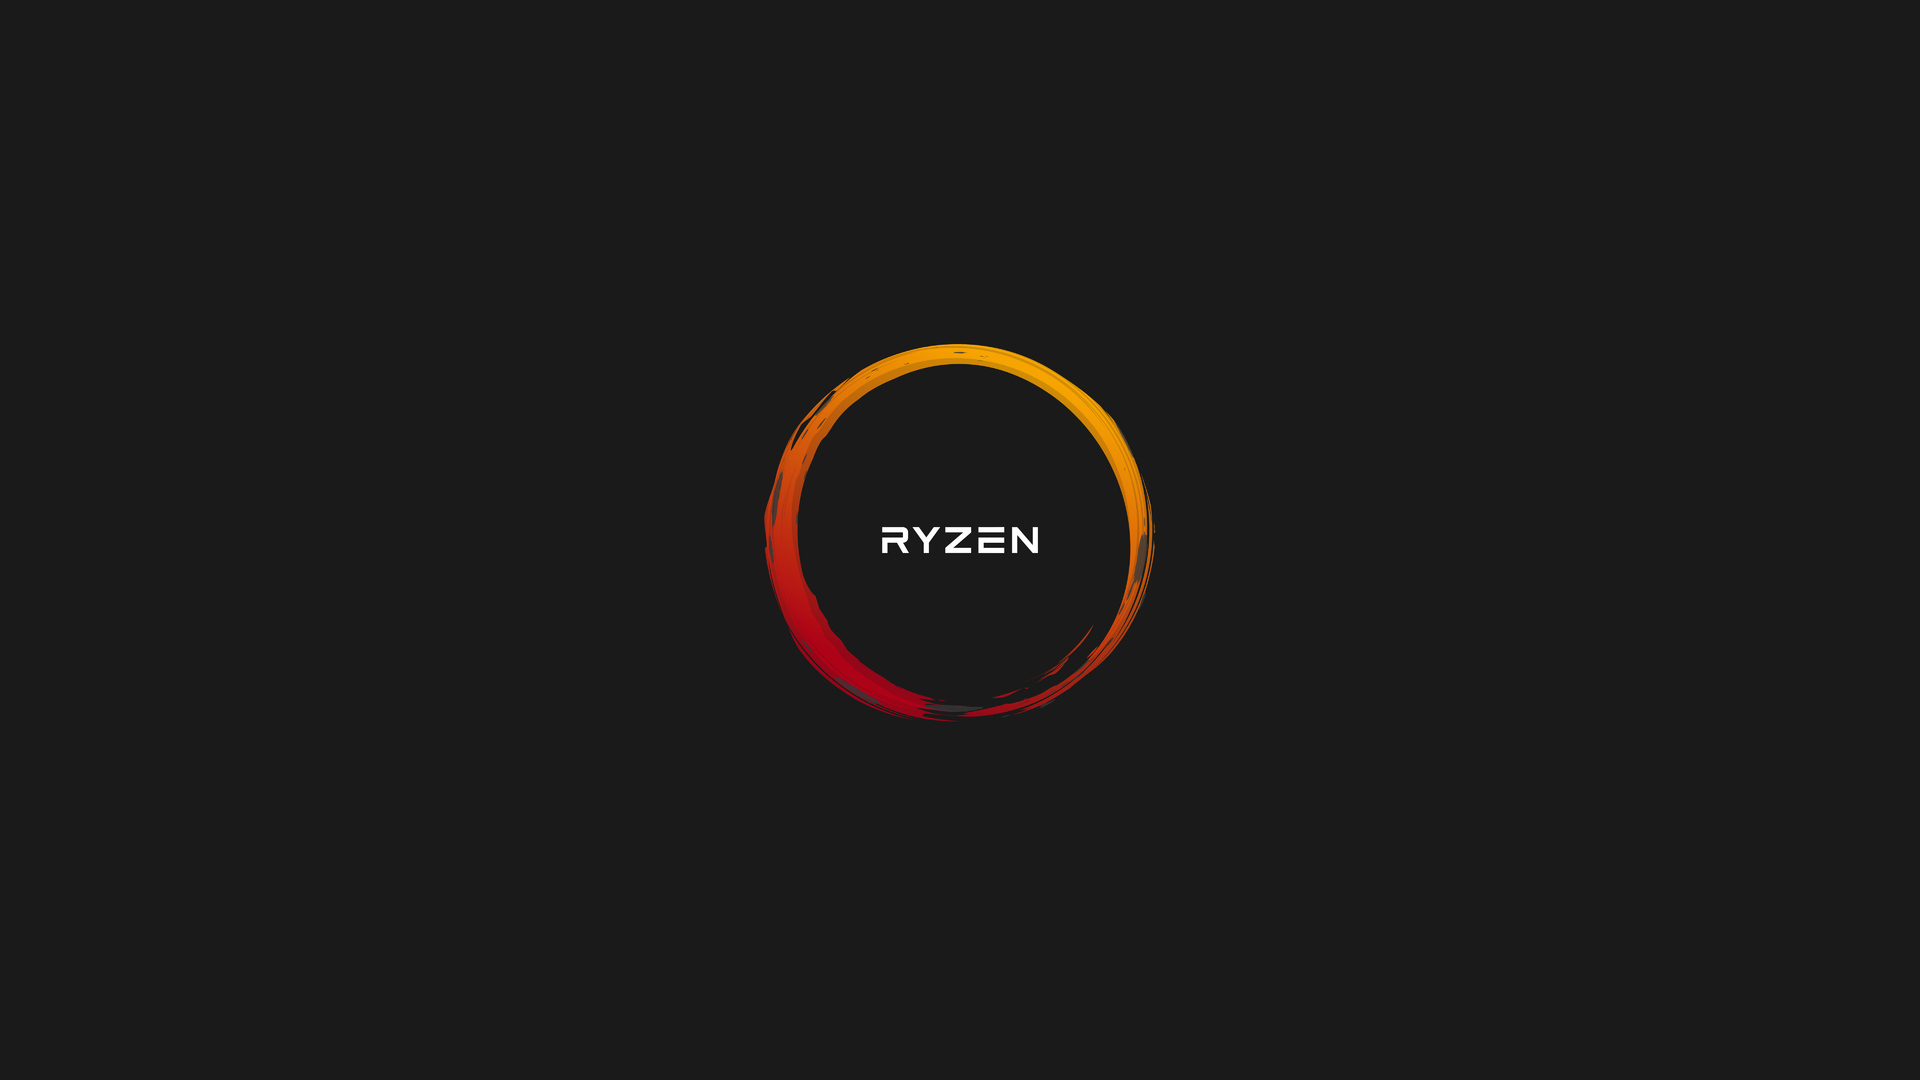 1920x1080 amd ryzen 8k laptop full hd 1080p hd 4k wallpapers, images